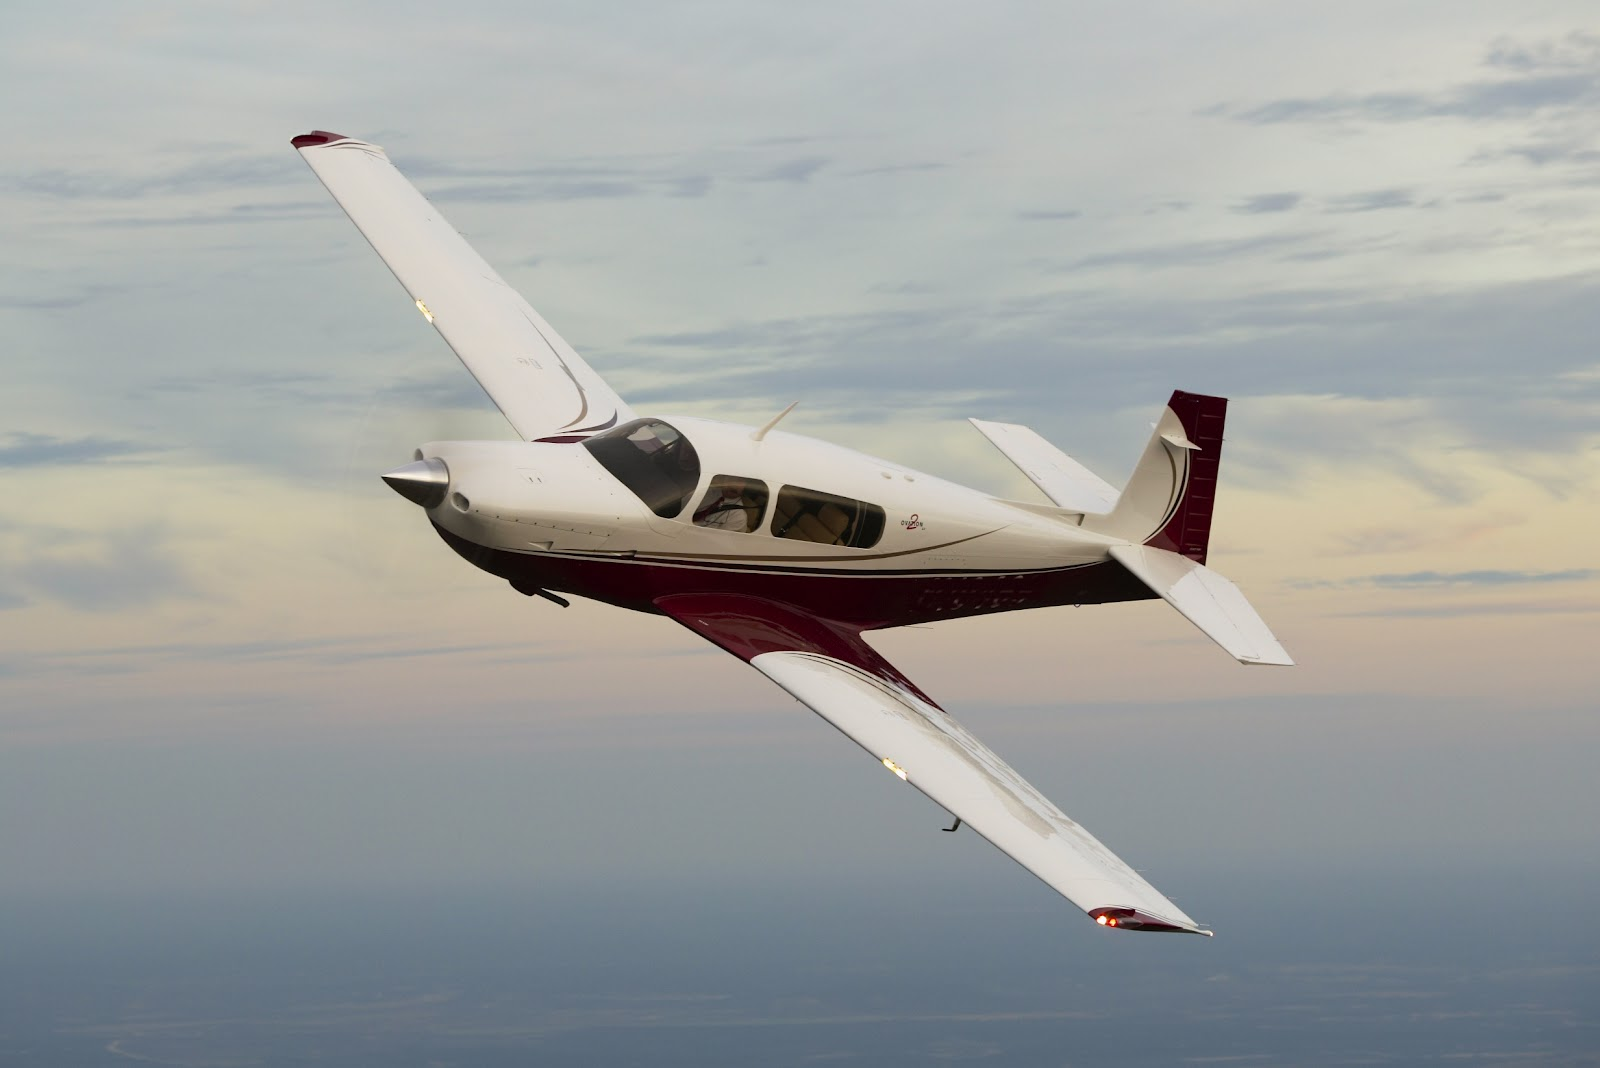 Mooney M207 airplane aircraft